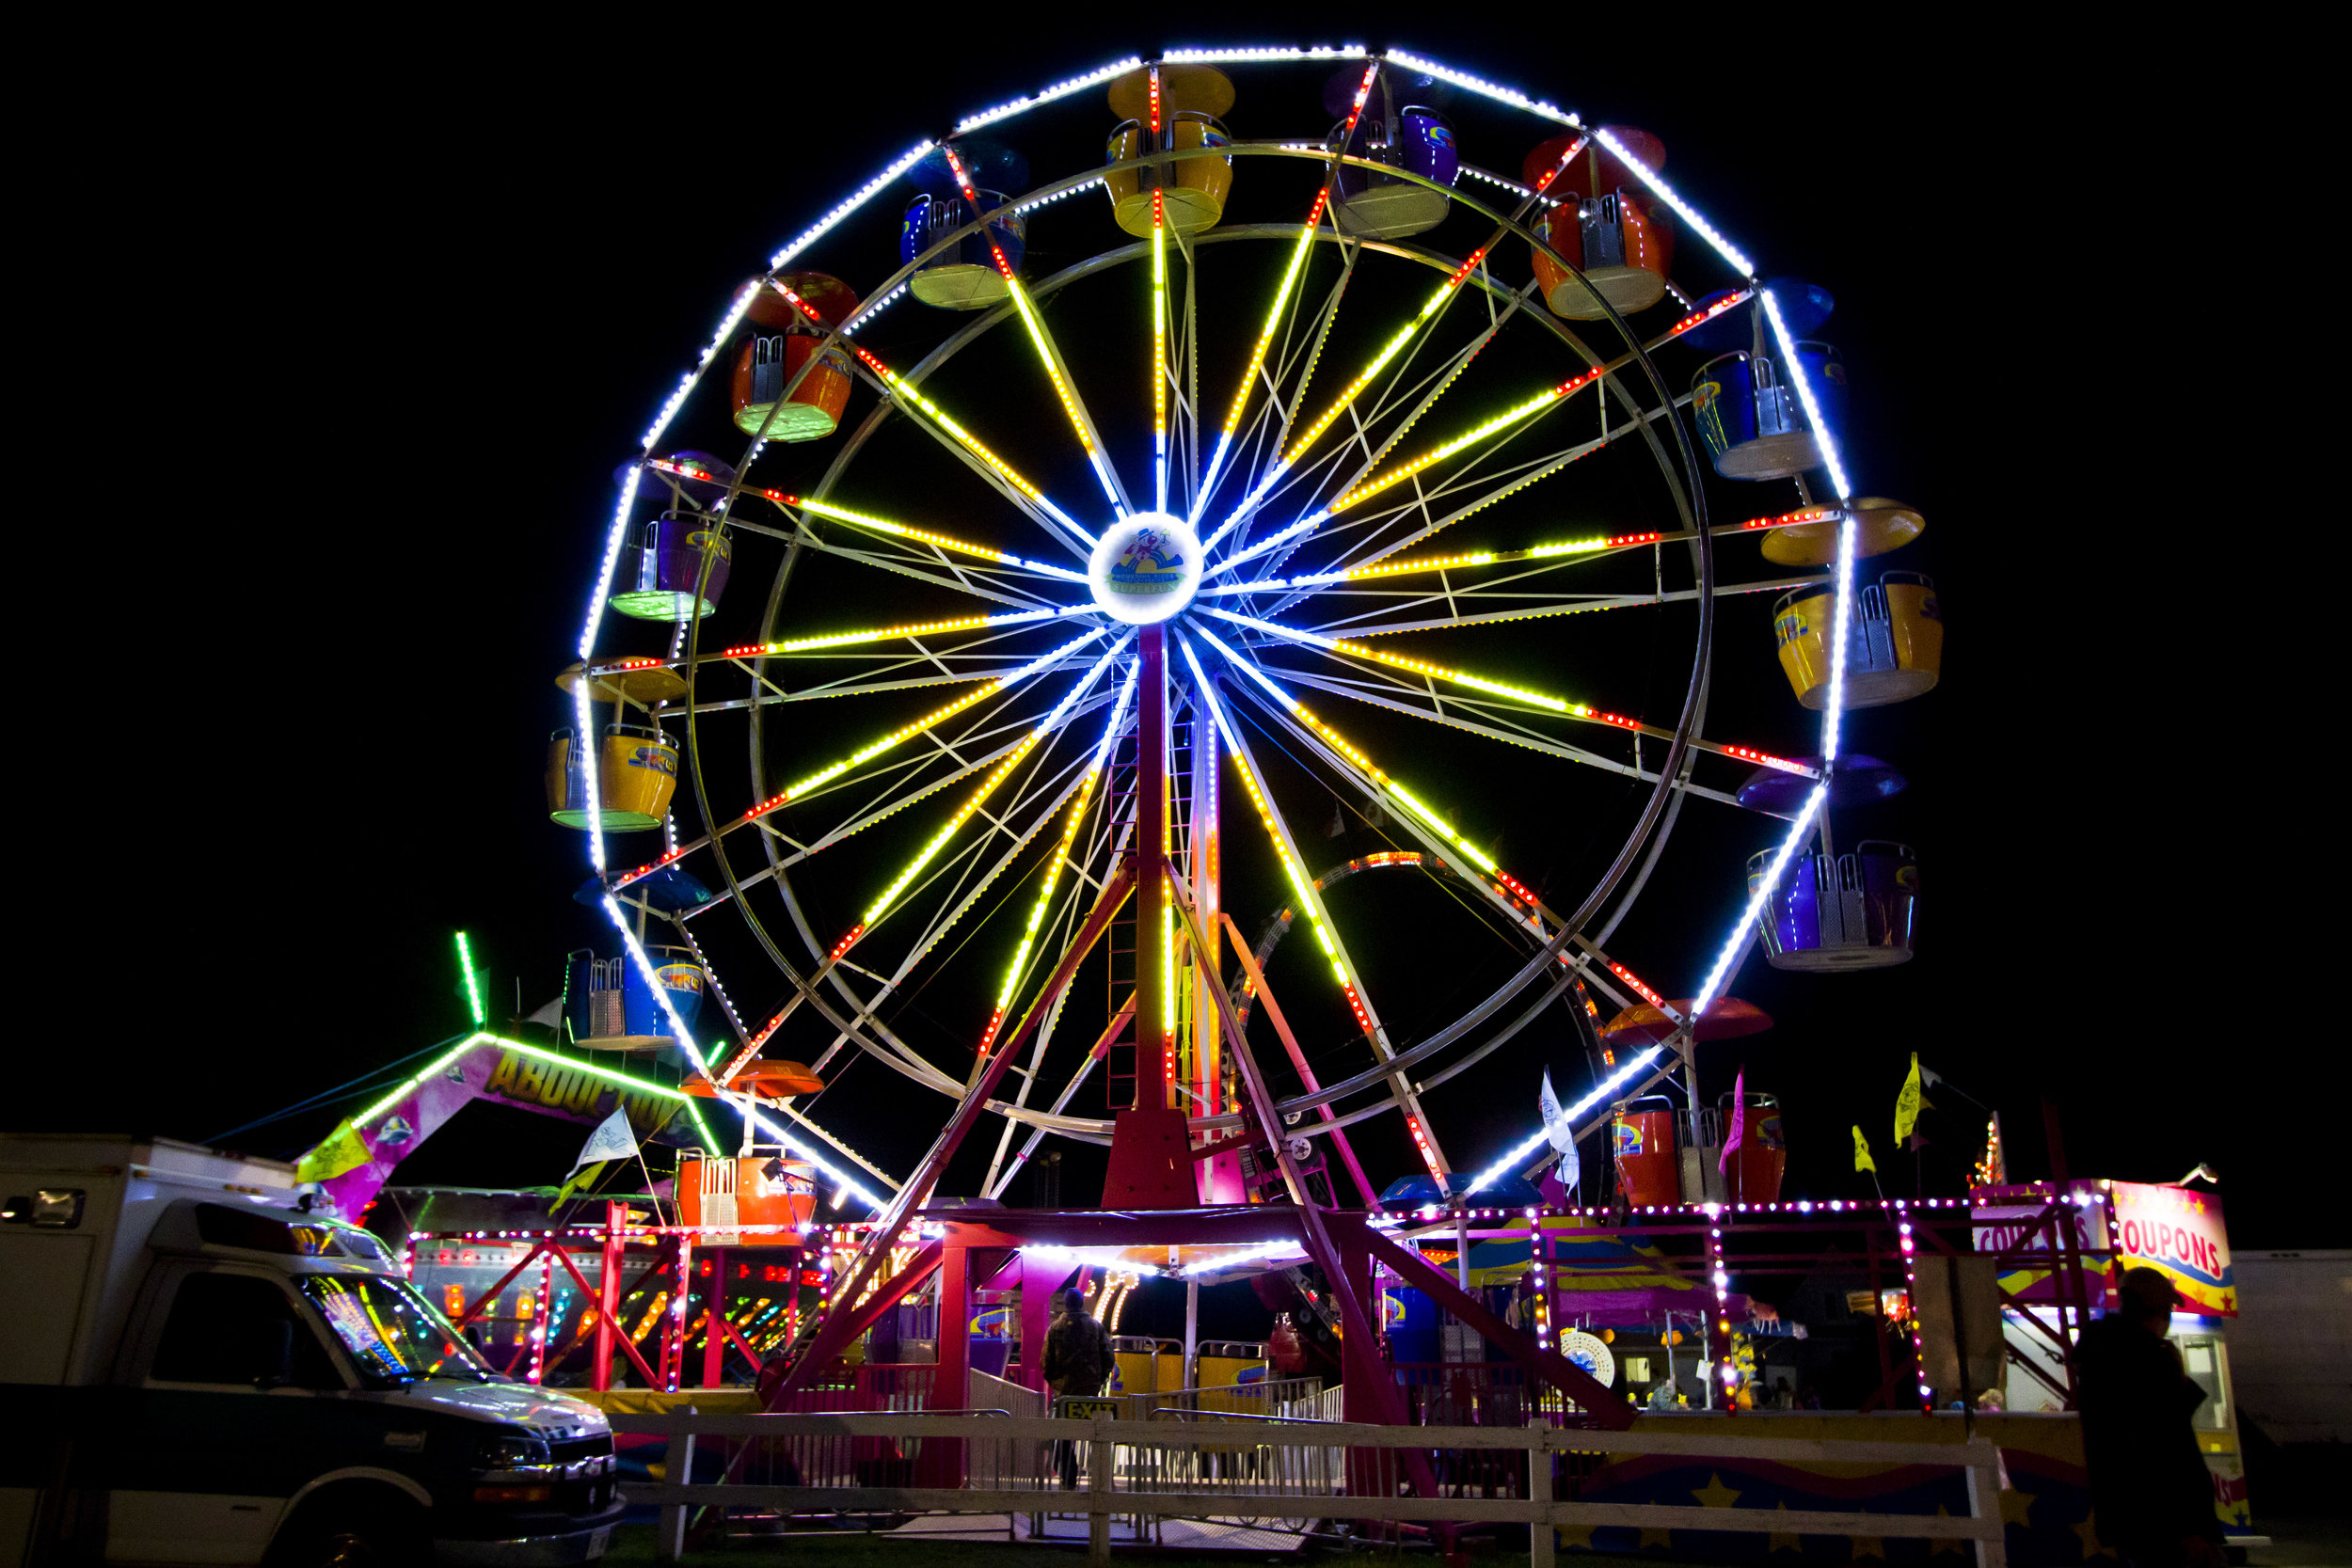 Fall Fair ferris wheel at night Andrew Dawe.jpg